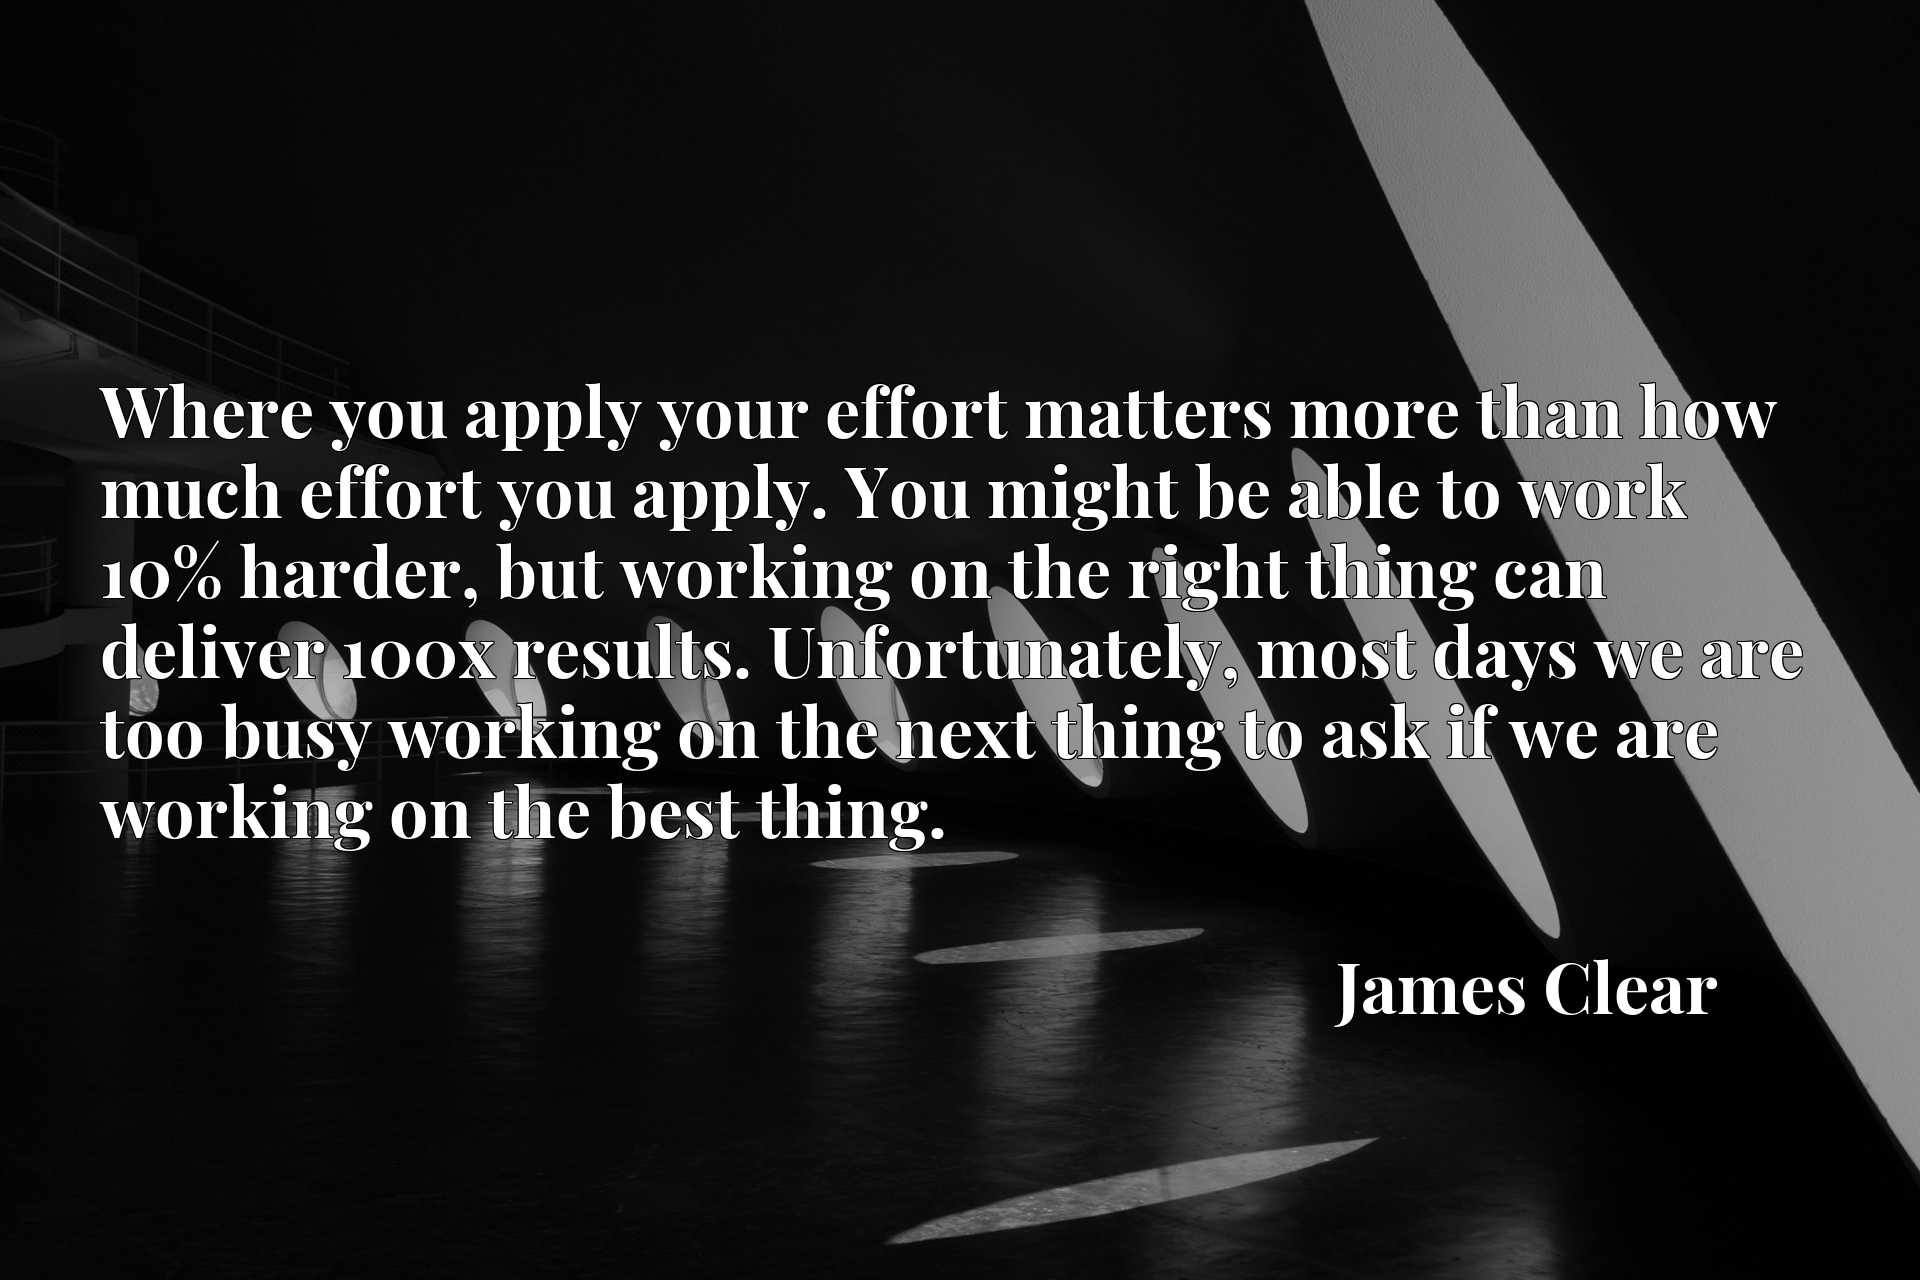 Where you apply your effort matters more than how much effort you apply. You might be able to work 10% harder, but working on the right thing can deliver 100x results. Unfortunately, most days we are too busy working on the next thing to ask if we are working on the best thing.